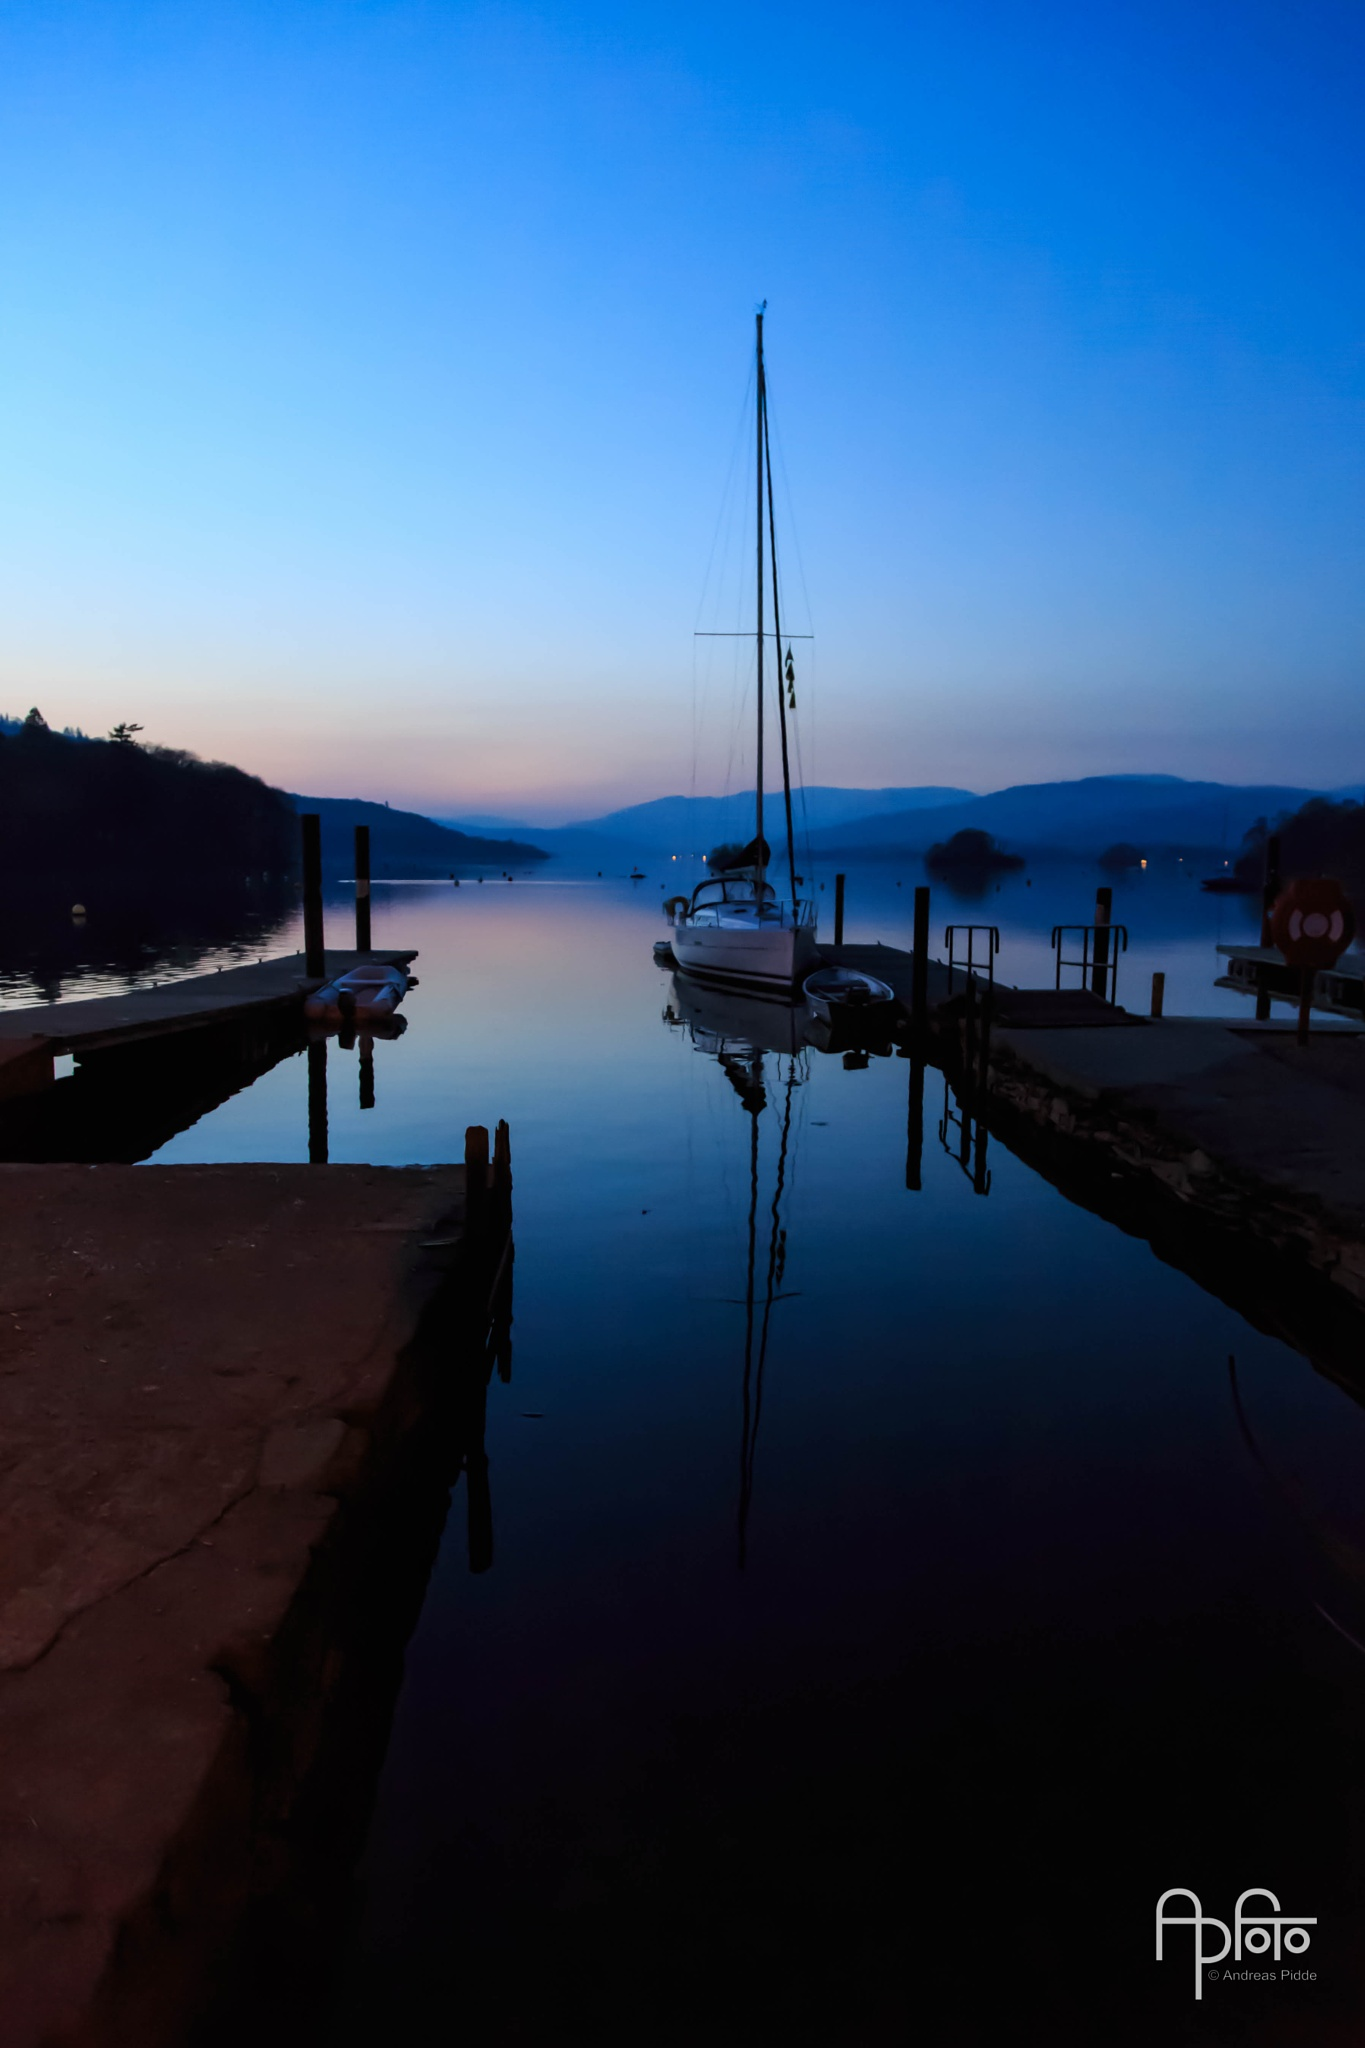 Blue Hour at Windermere Pier by Andreas Pidde